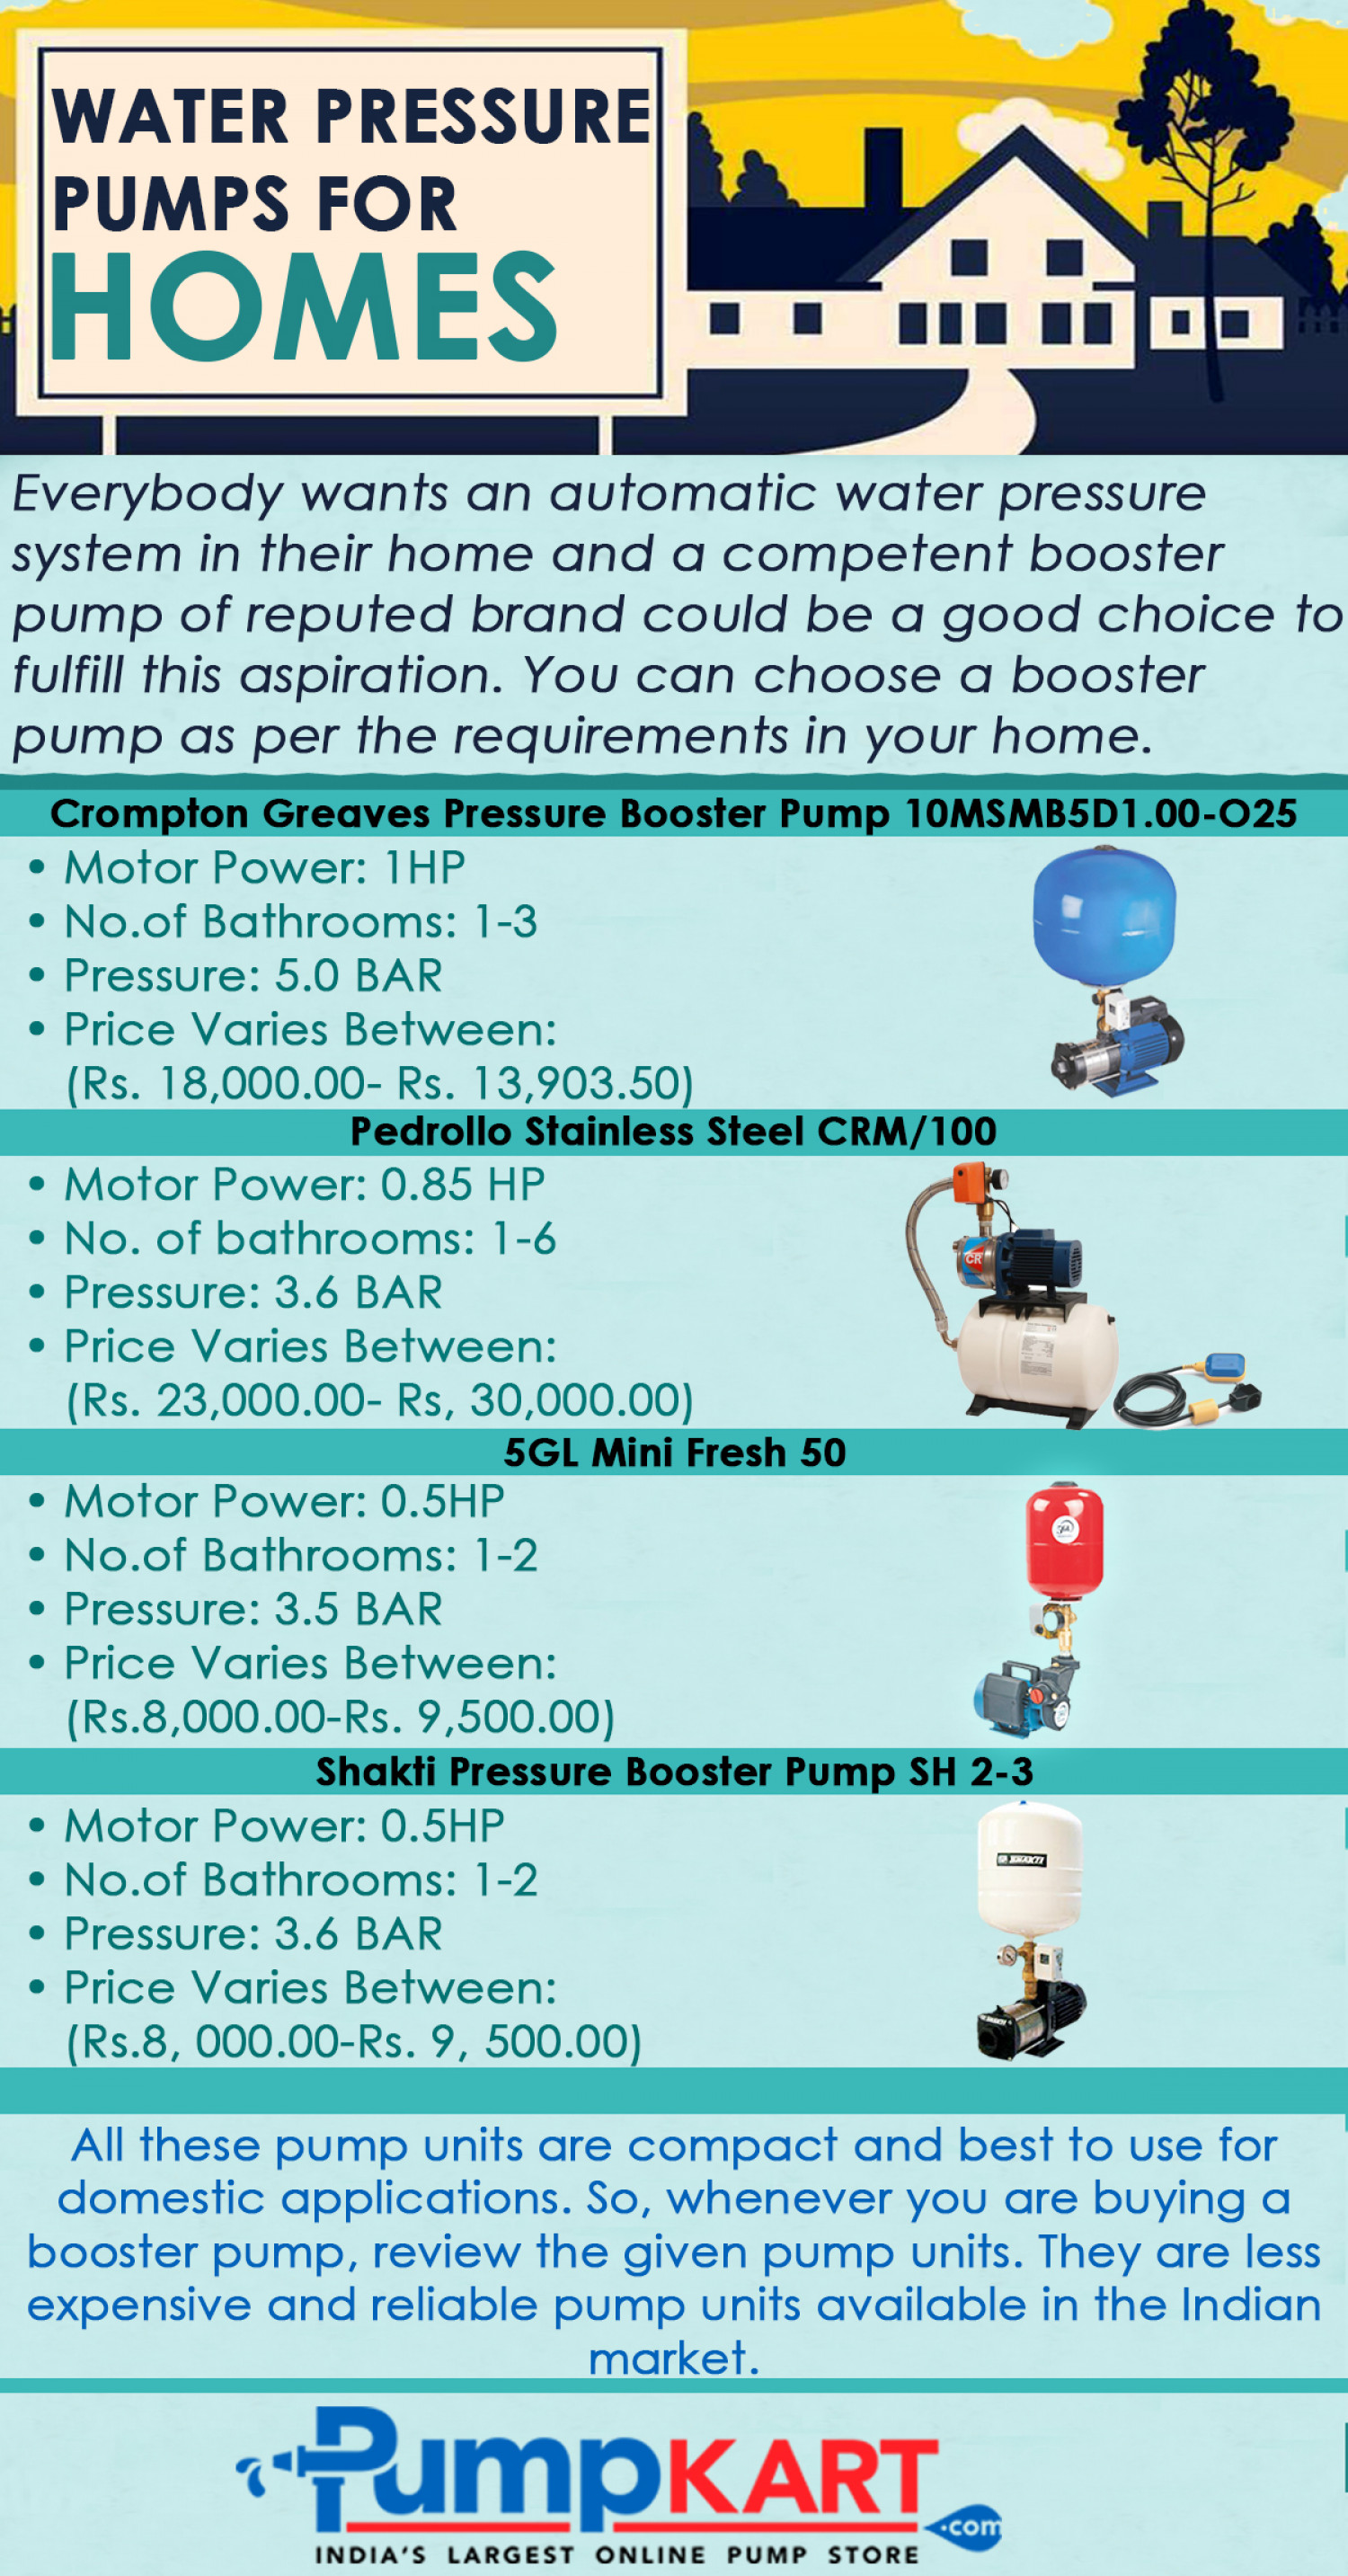 Water Pressure Pumps for Homes | Visual.ly